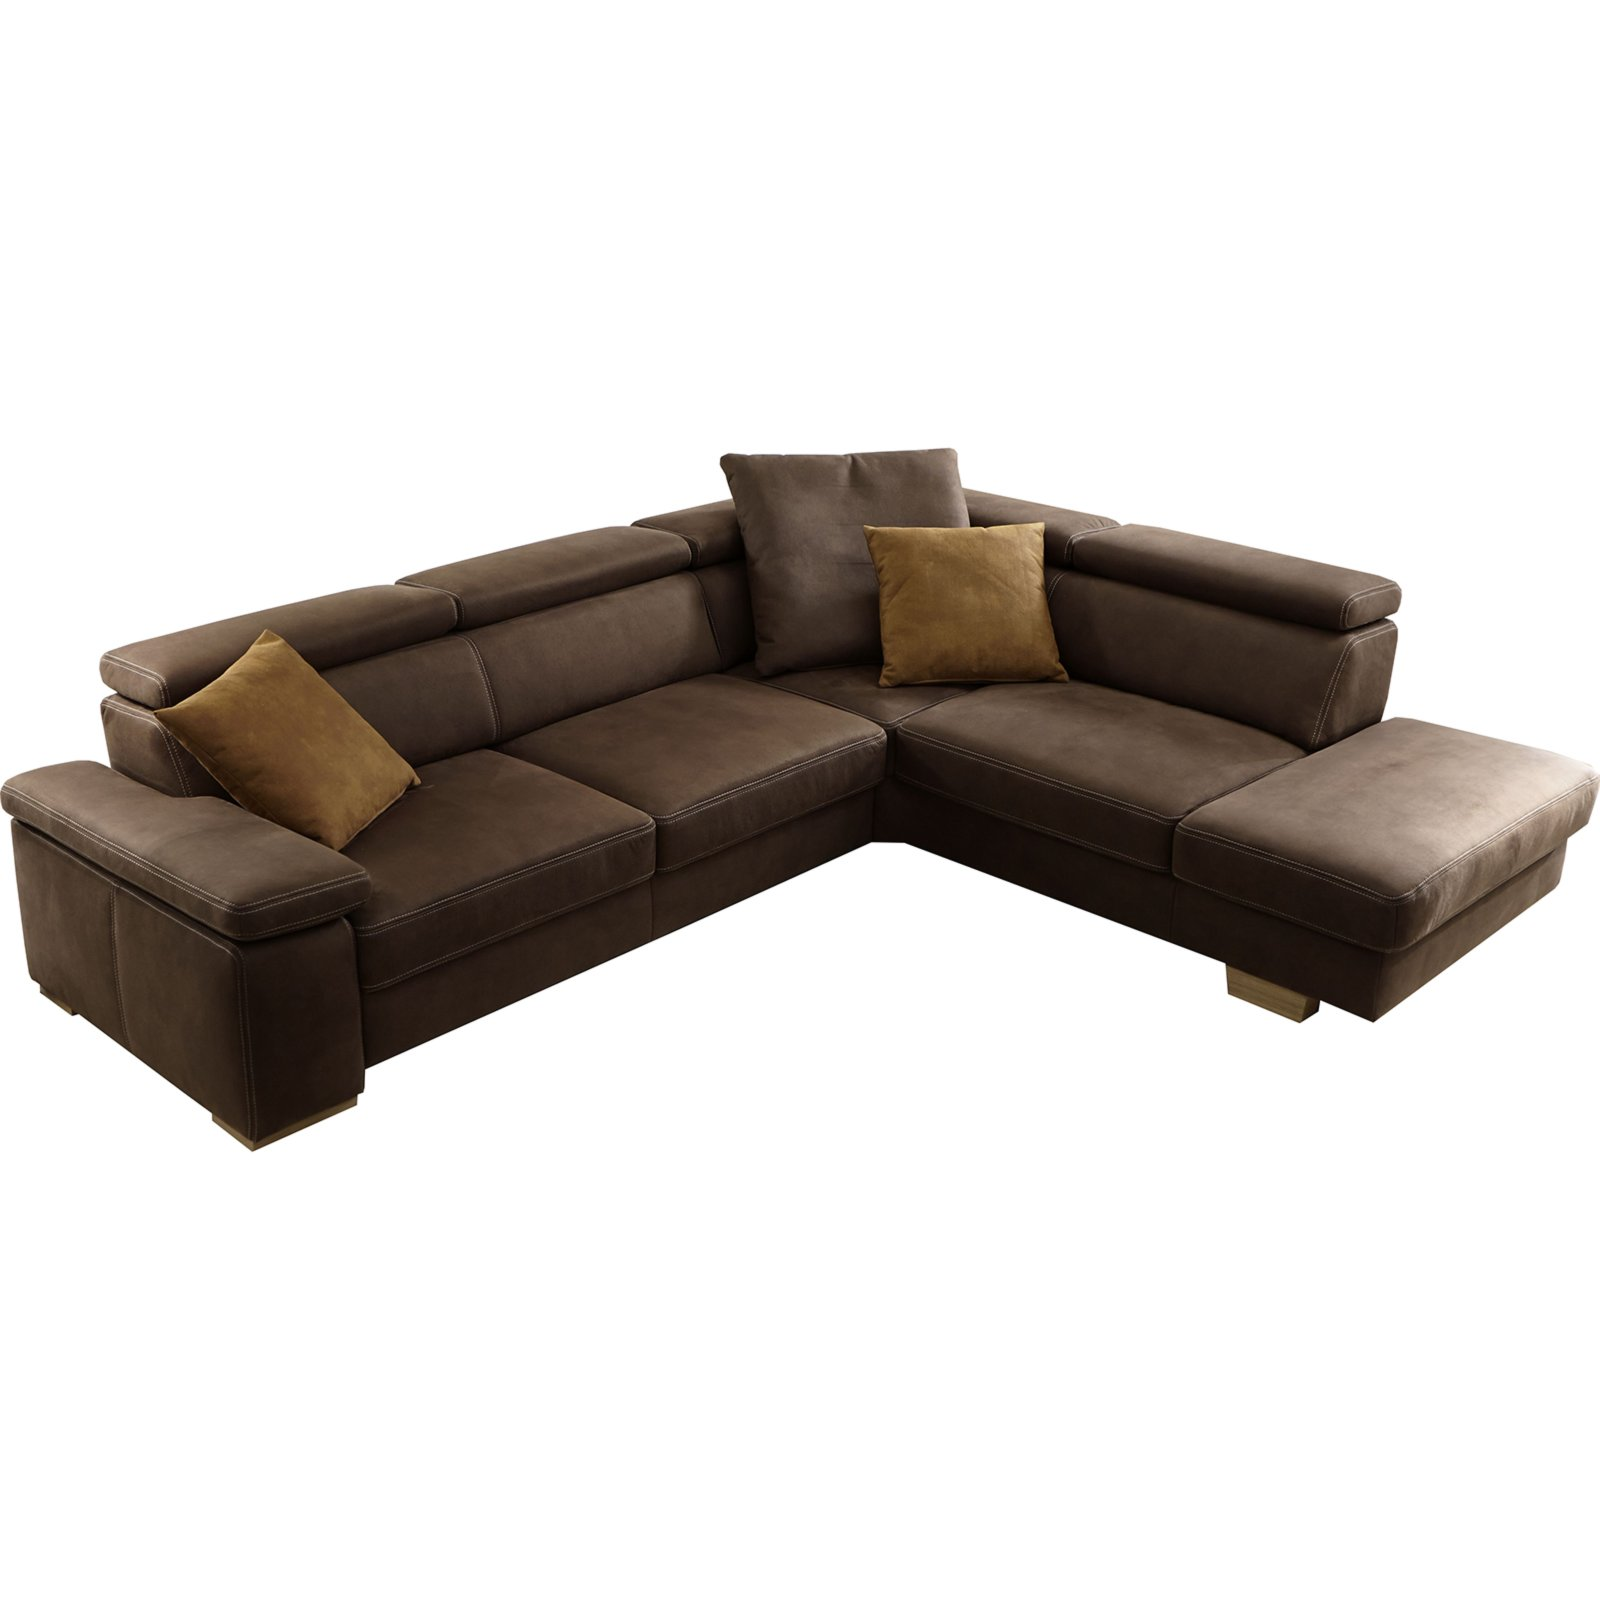 ecksofa braun mit kopfpolsterverstellung ecksofas l form sofas couches m bel. Black Bedroom Furniture Sets. Home Design Ideas